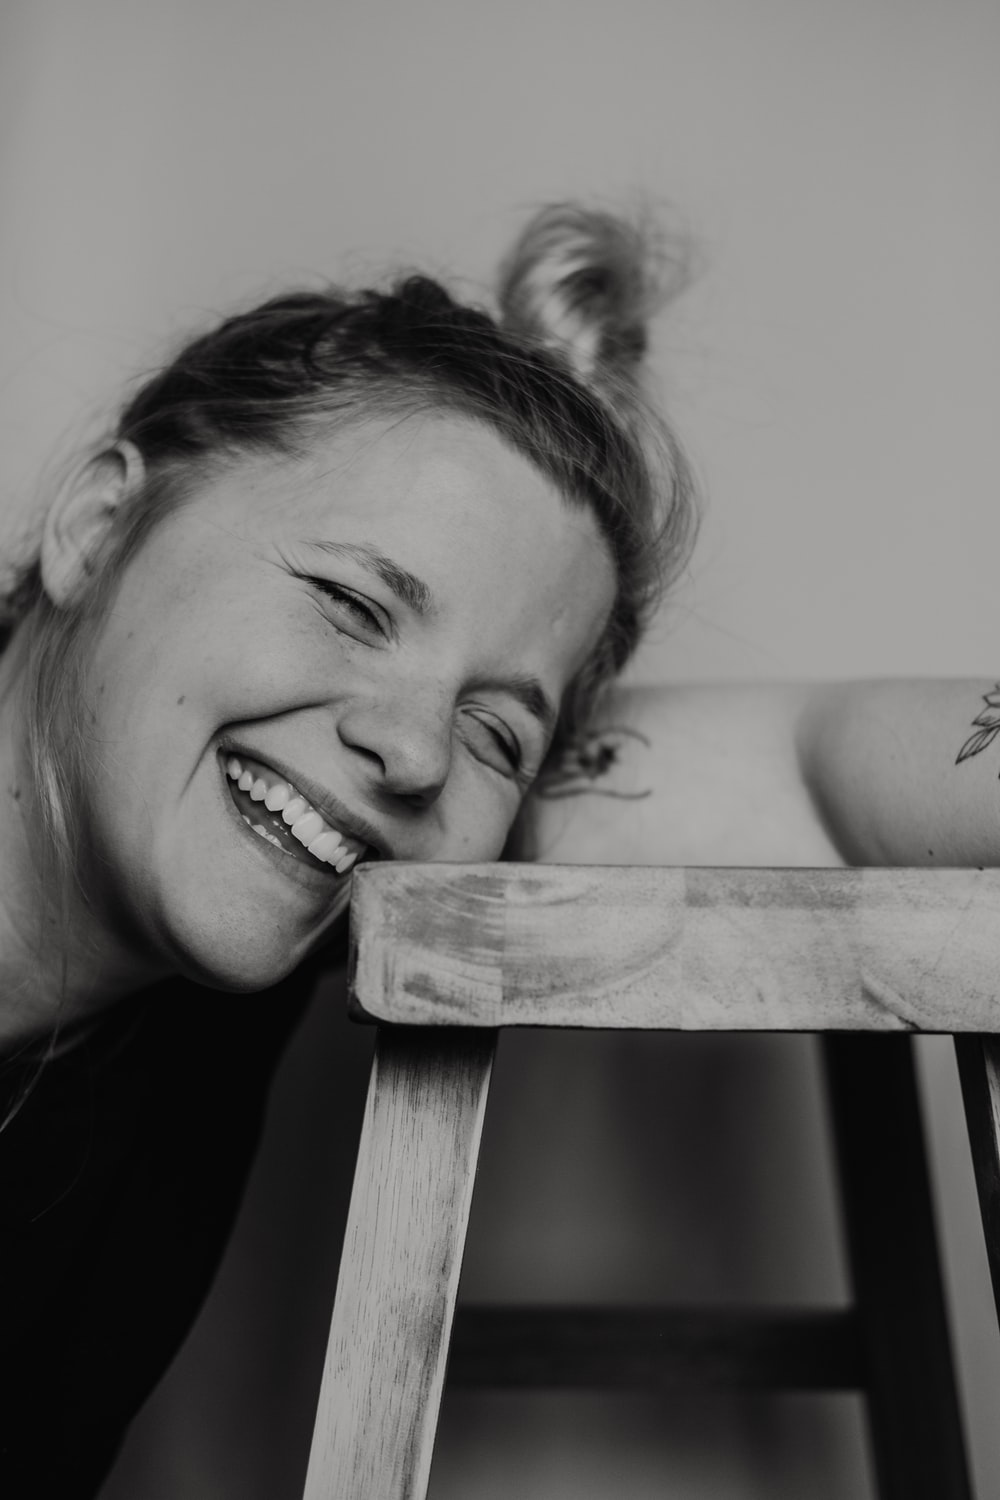 grayscale photo of woman smiling and leaning towards stool